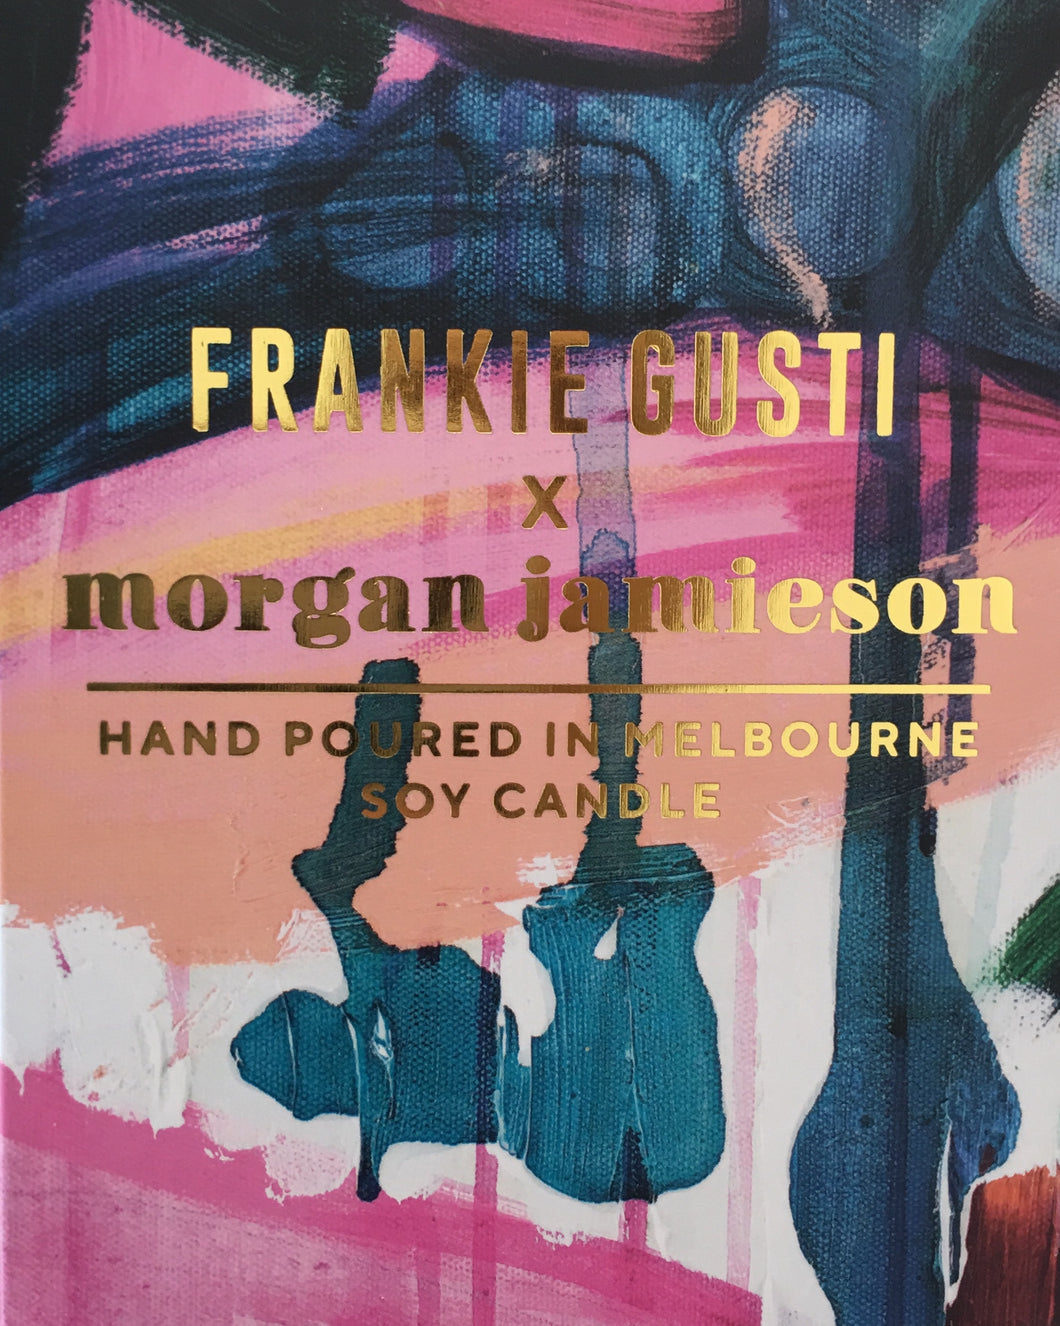 Frankie Gusti x Morgan Jamieson - Spiced Sugar Cookie